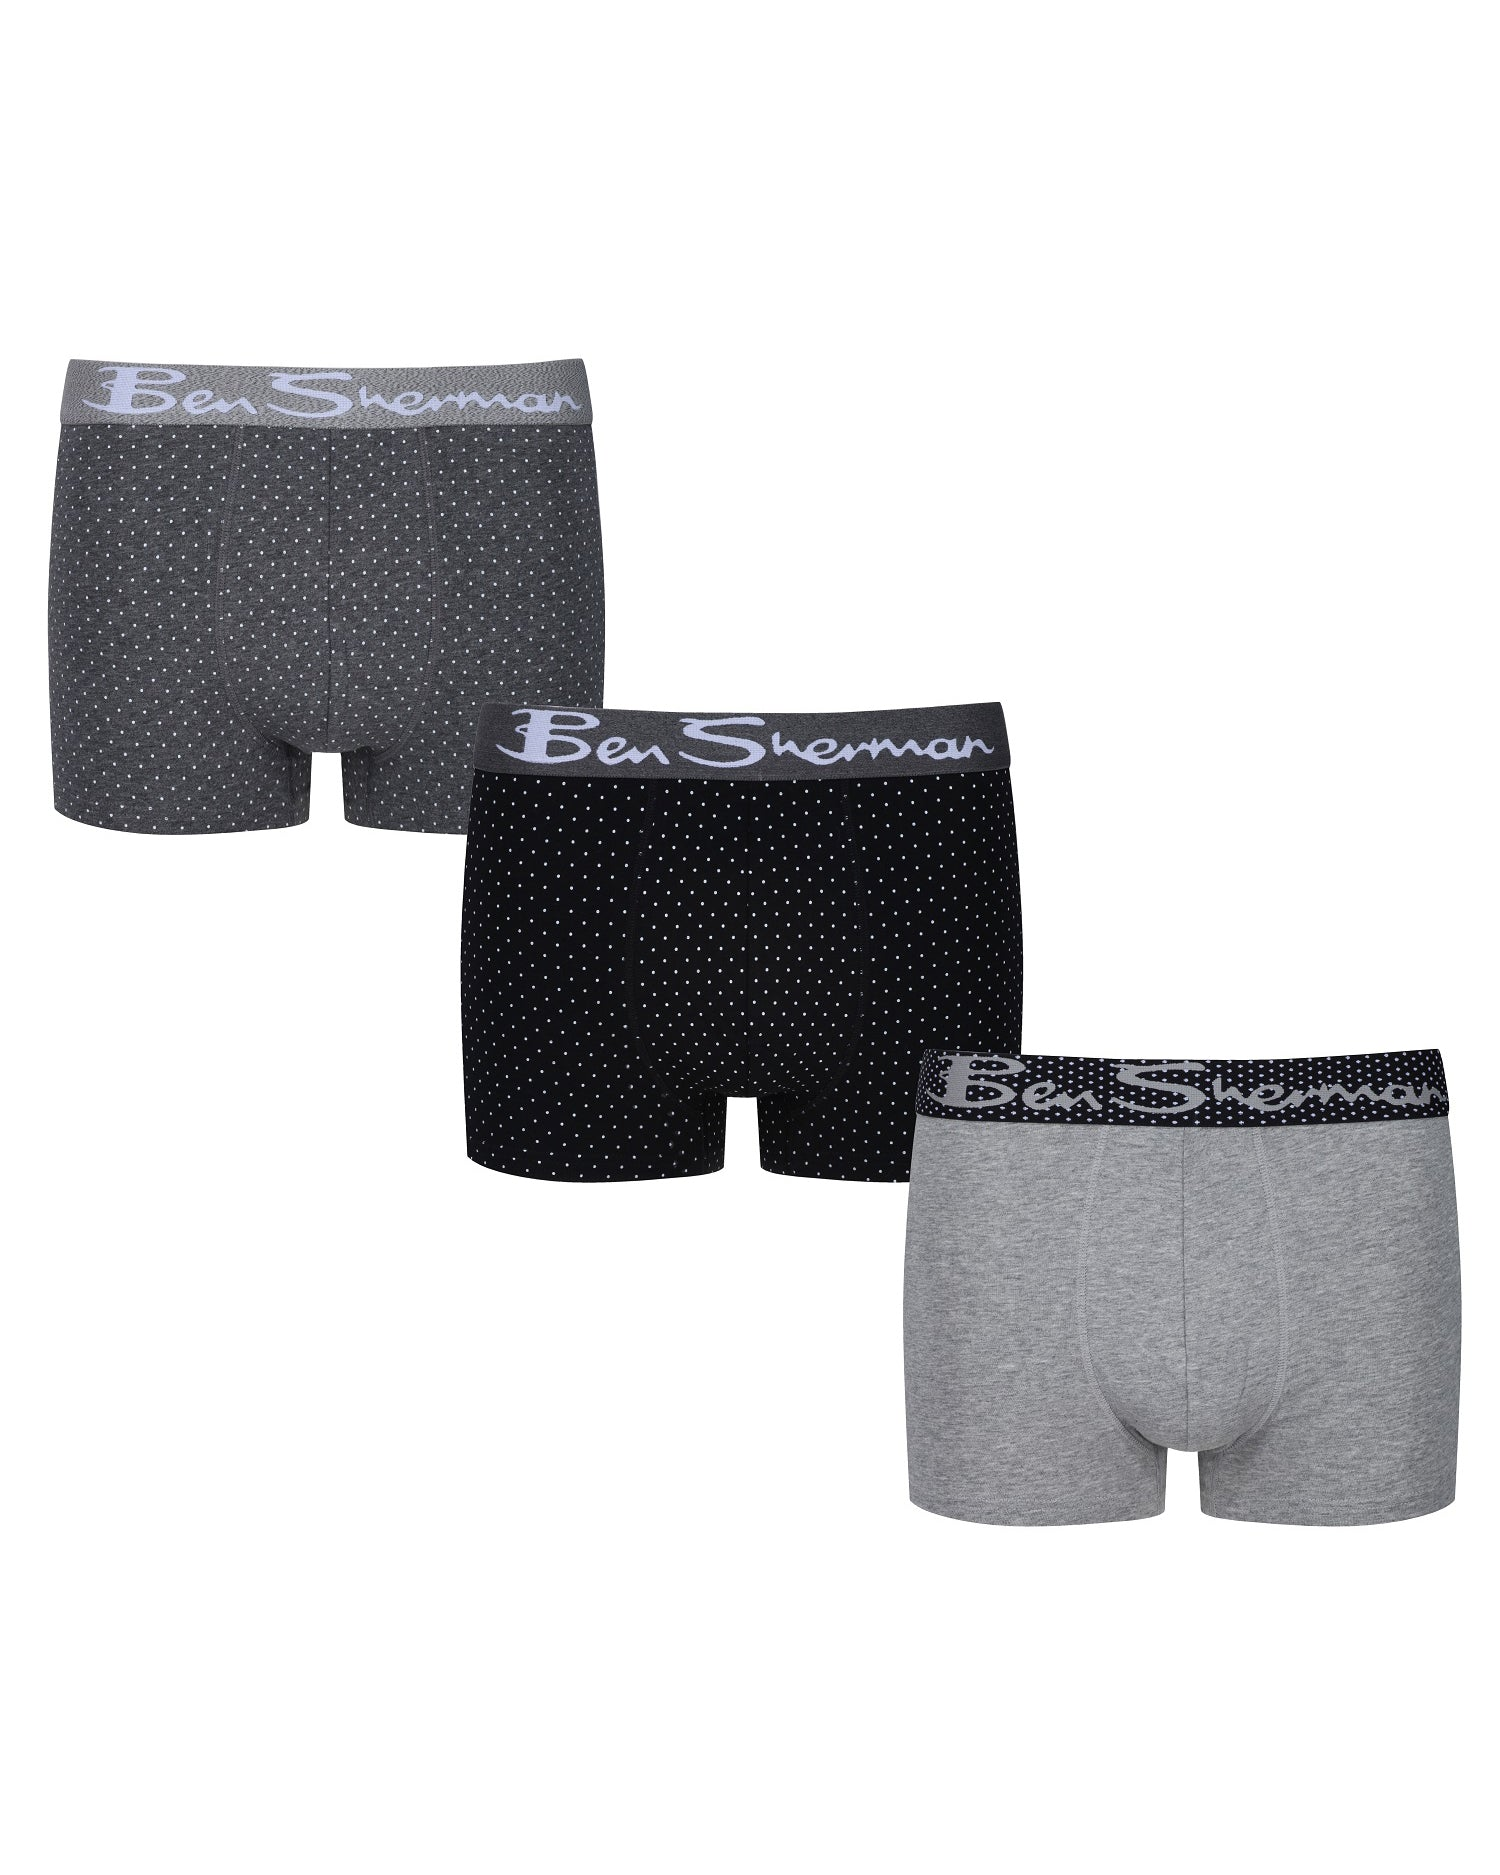 Giles Men's 3-Pack Fitted No-Fly Boxer-Briefs - Charcoal Grey Marl/Grey Marl/Black Spot